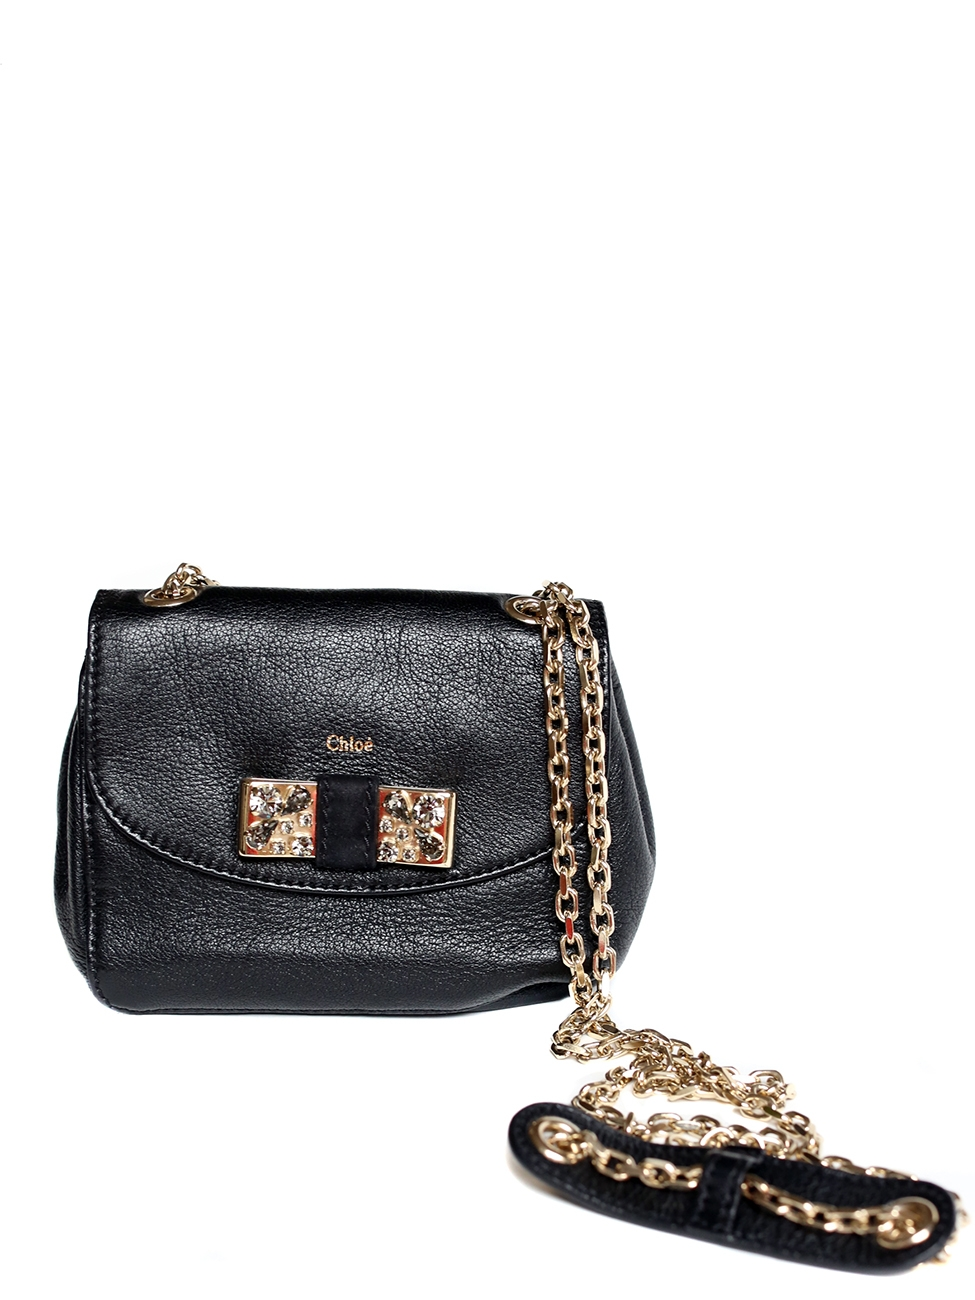 Louise Paris - CHLOE Black leather Lily mini cross body bag with a ...